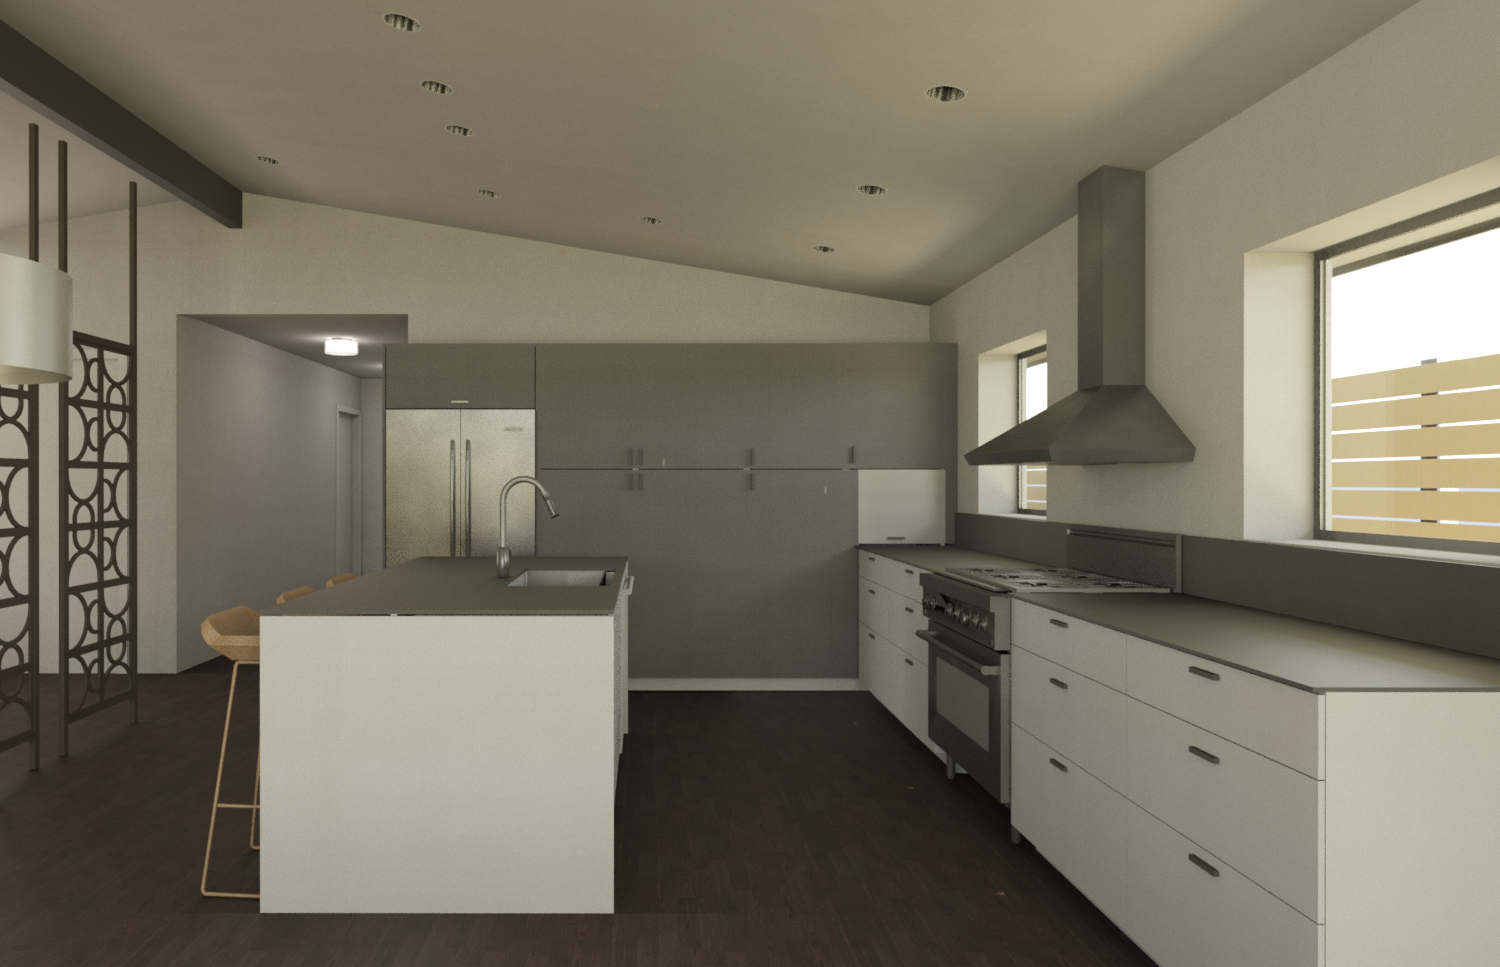 Dexter_Way.rvt_2013-Sep-19_06-12-56PM-000_3D_View_-_Dining_to_Kitchen_-_galley_view.png